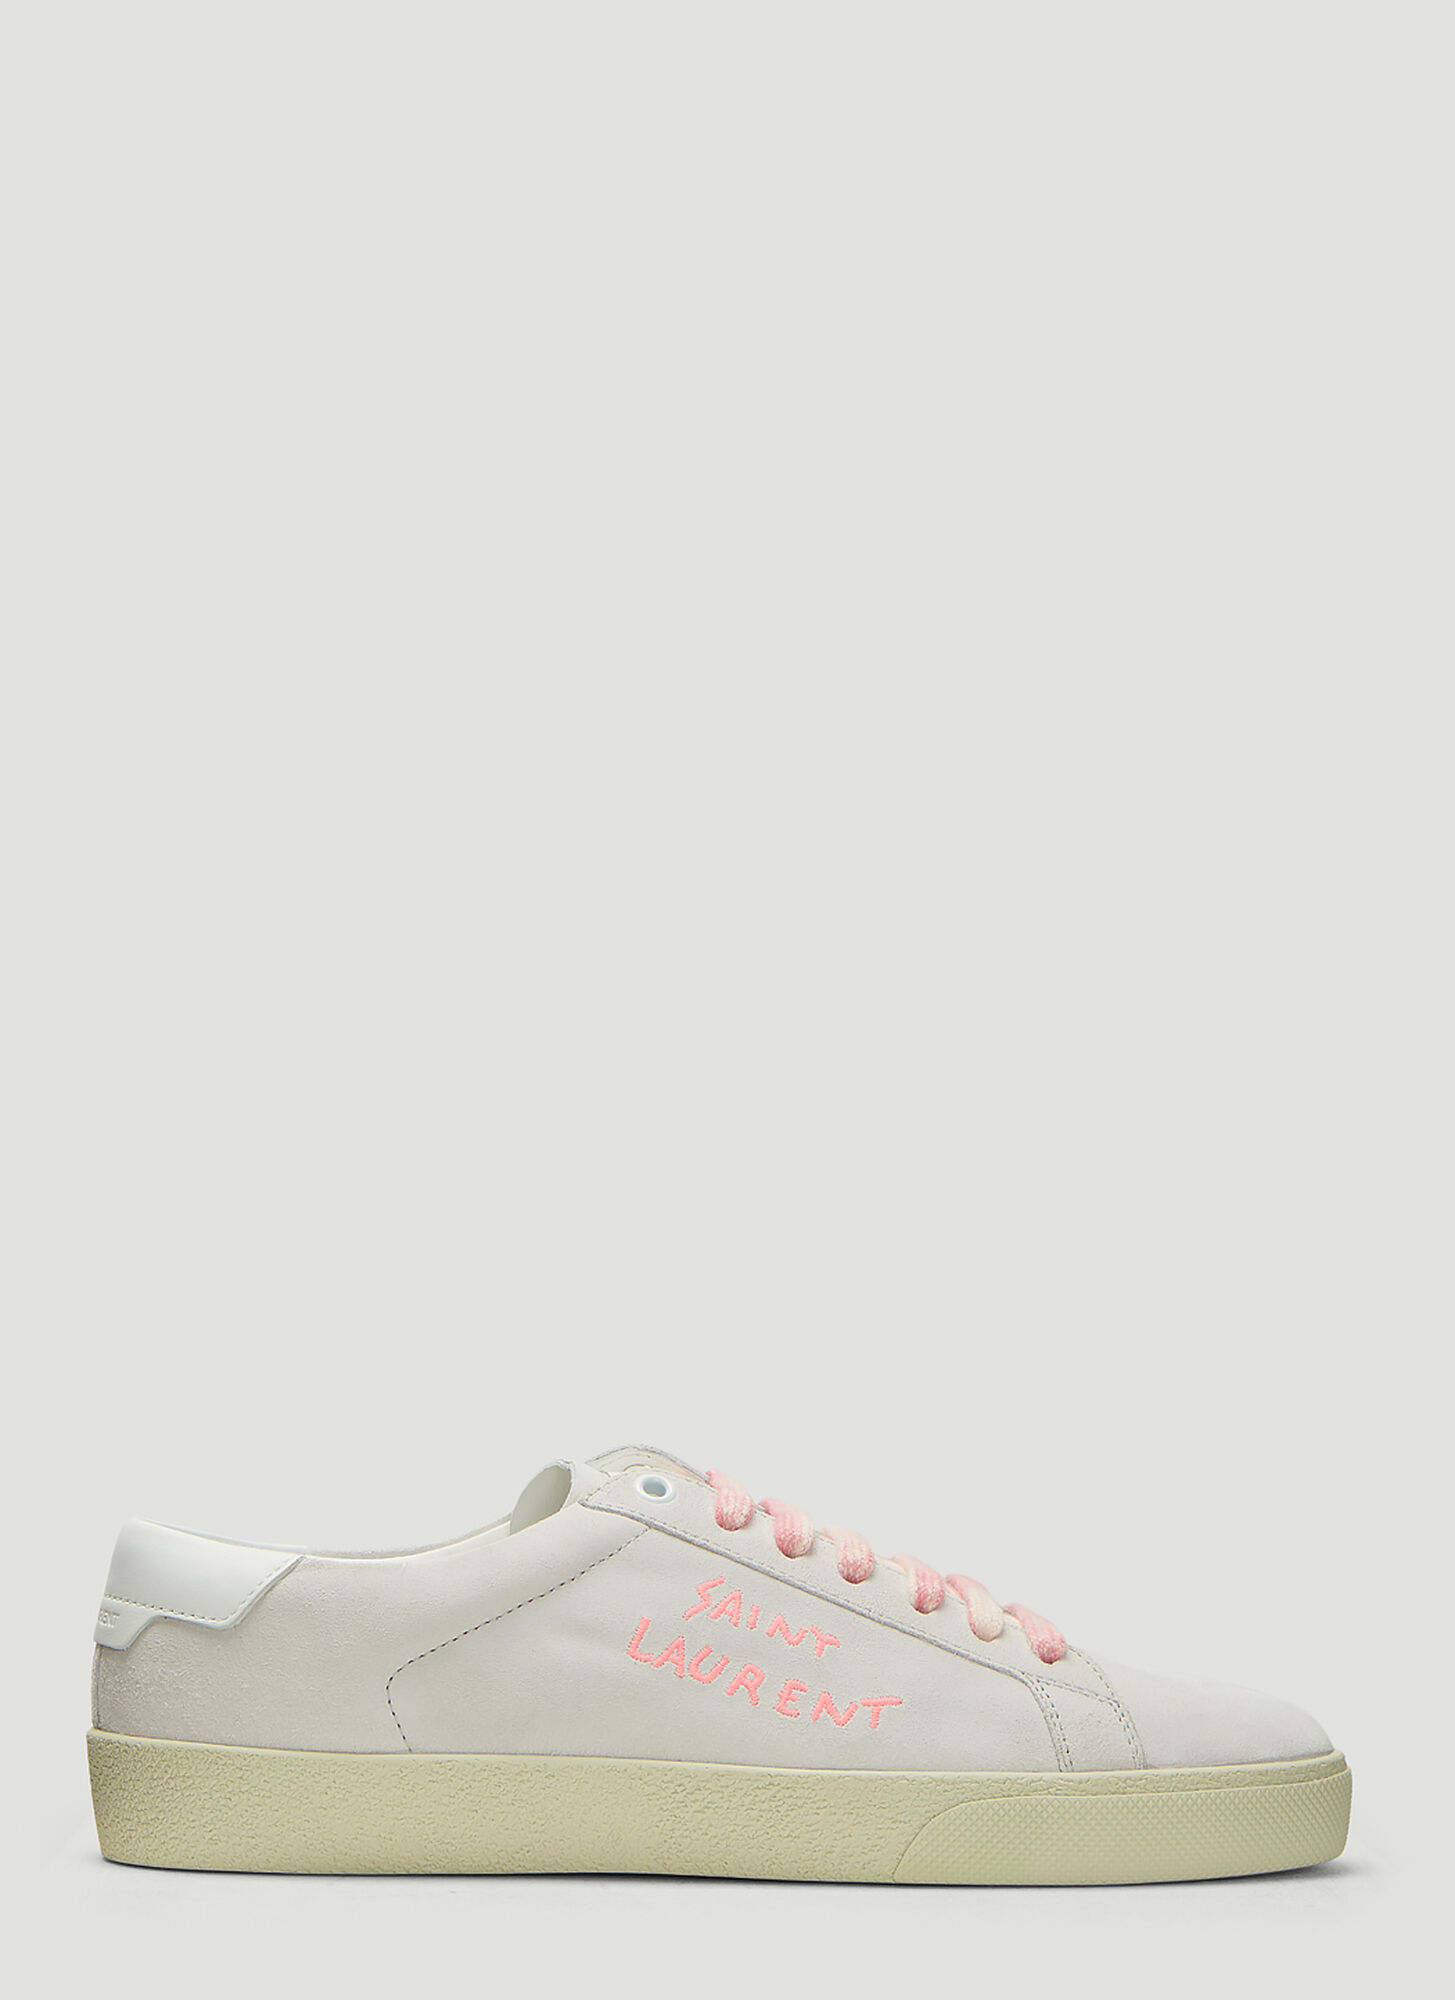 Saint Laurent Court Classic SL/06 Embroidered Sneakers in White